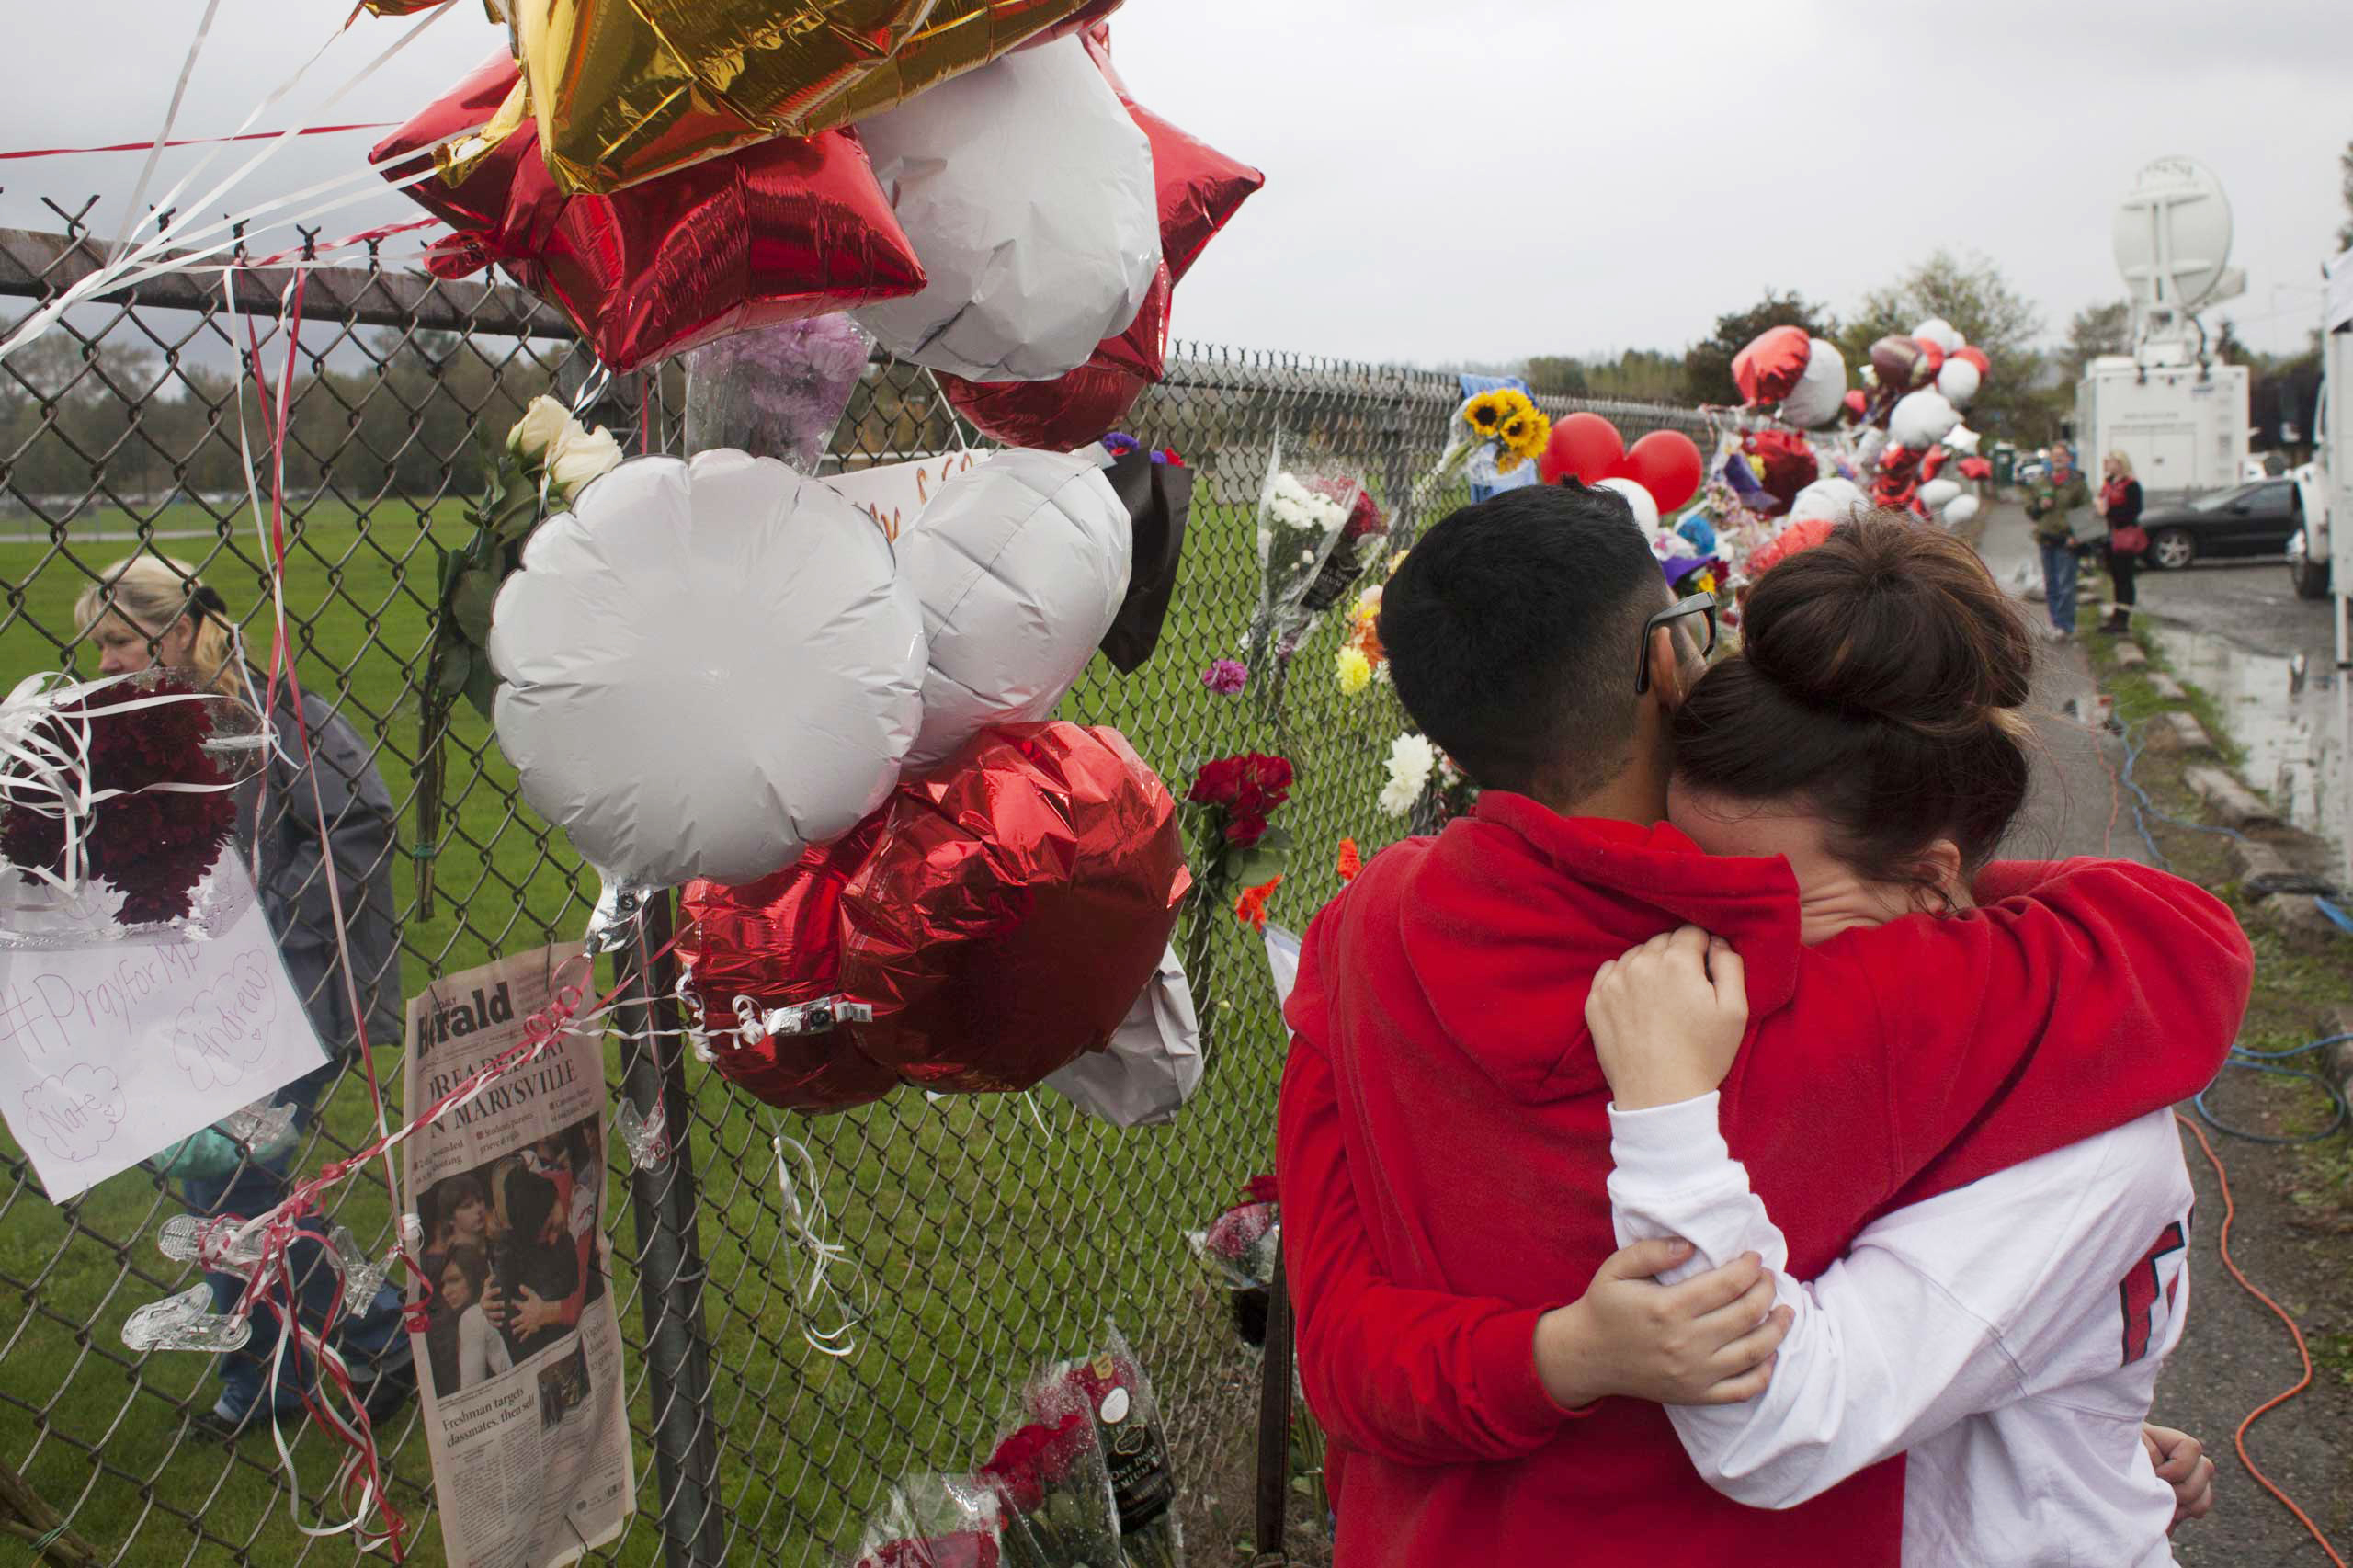 Students grieve beside a makeshift memorial at Marysville-Pilchuck High School in Marysville, Wash.